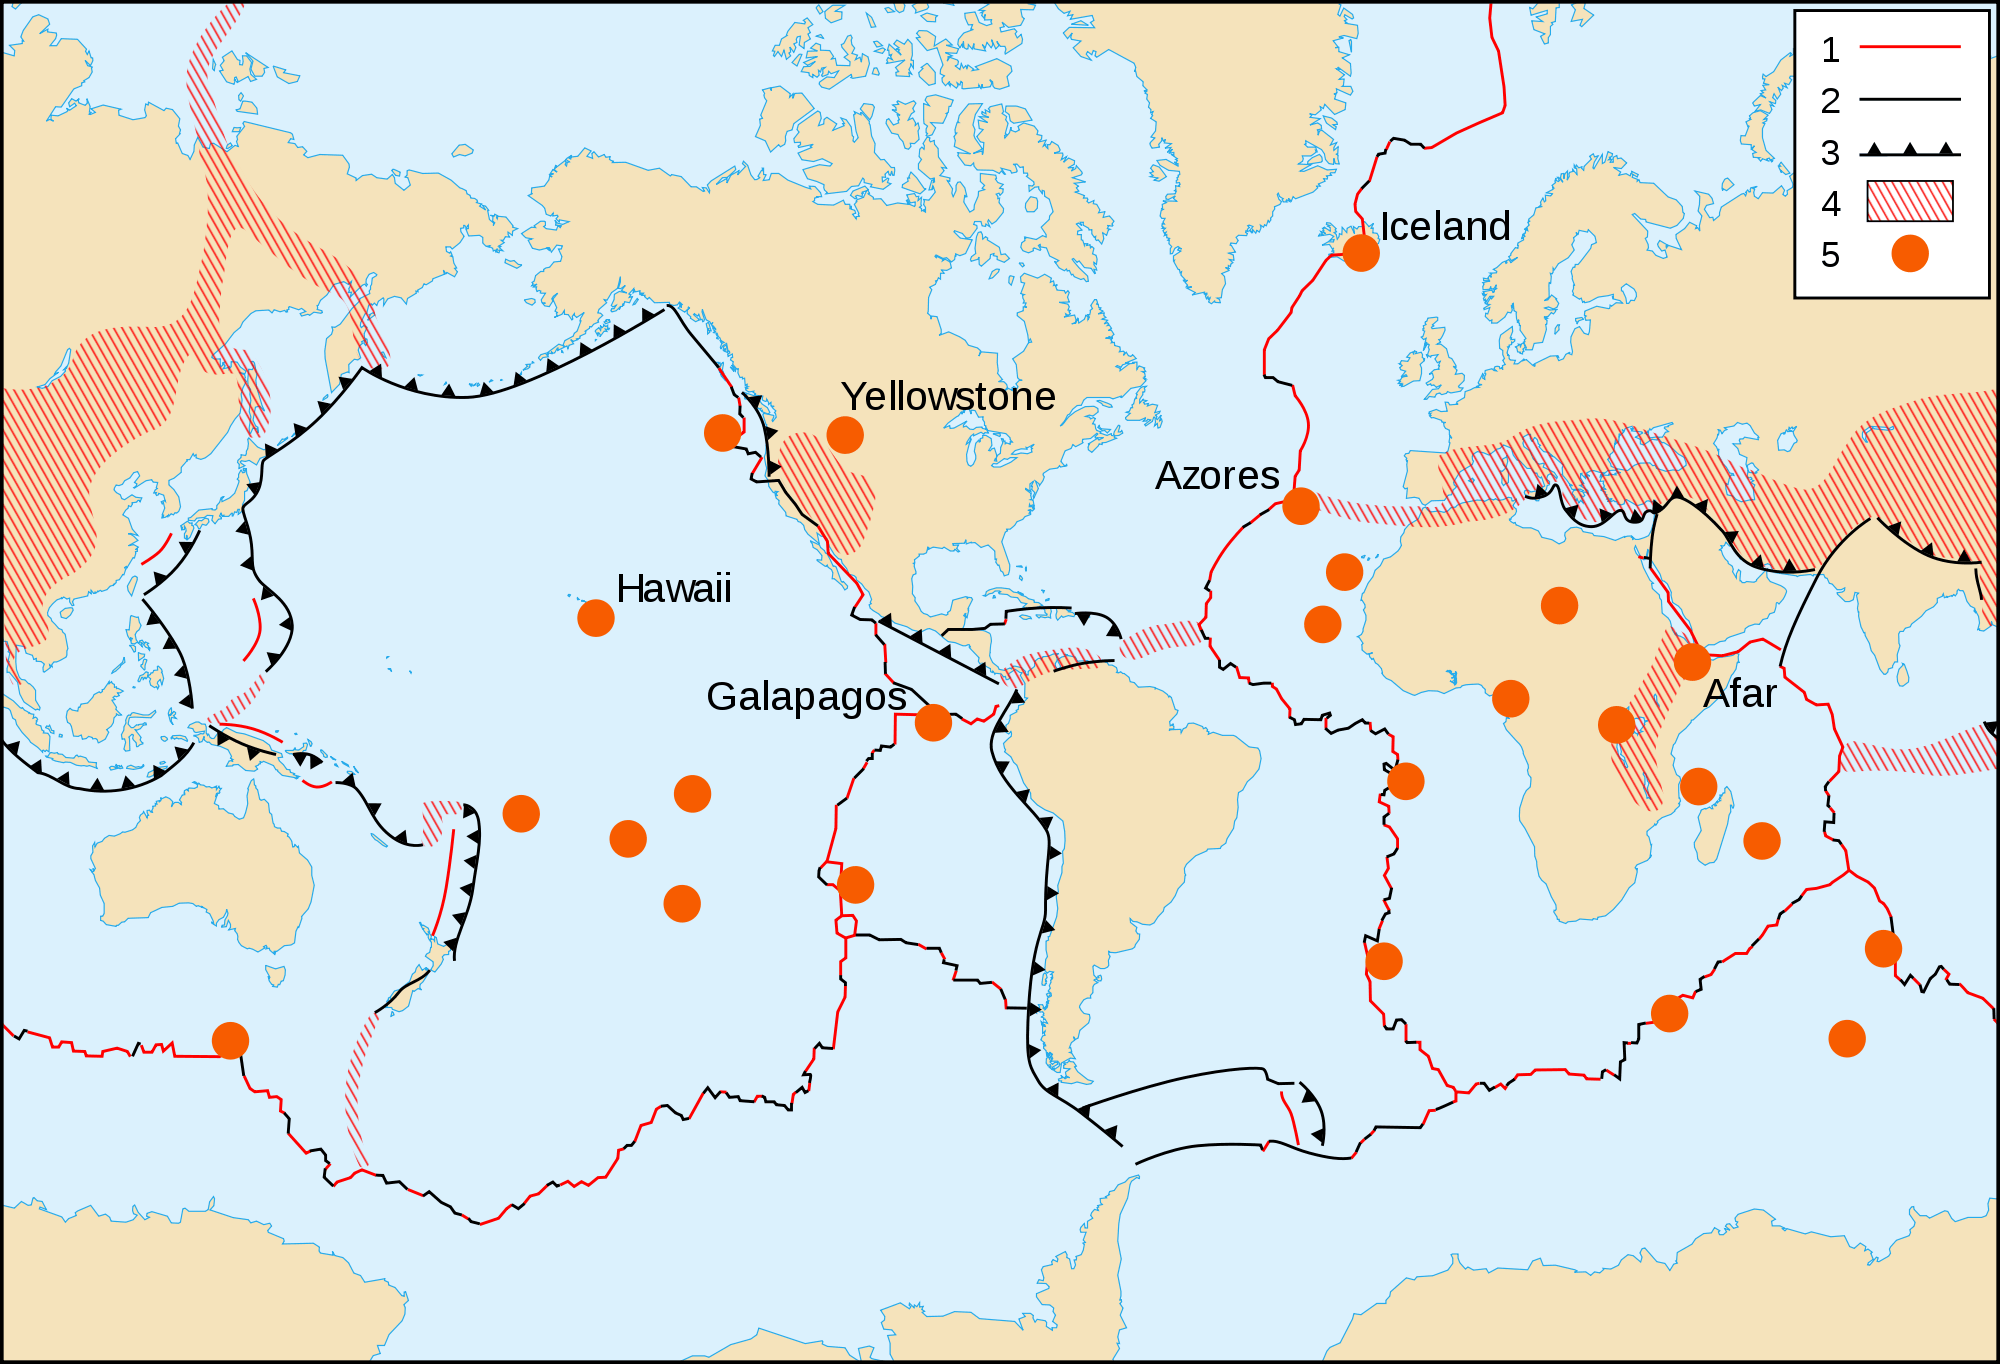 Map of the Tectonic Hotspots